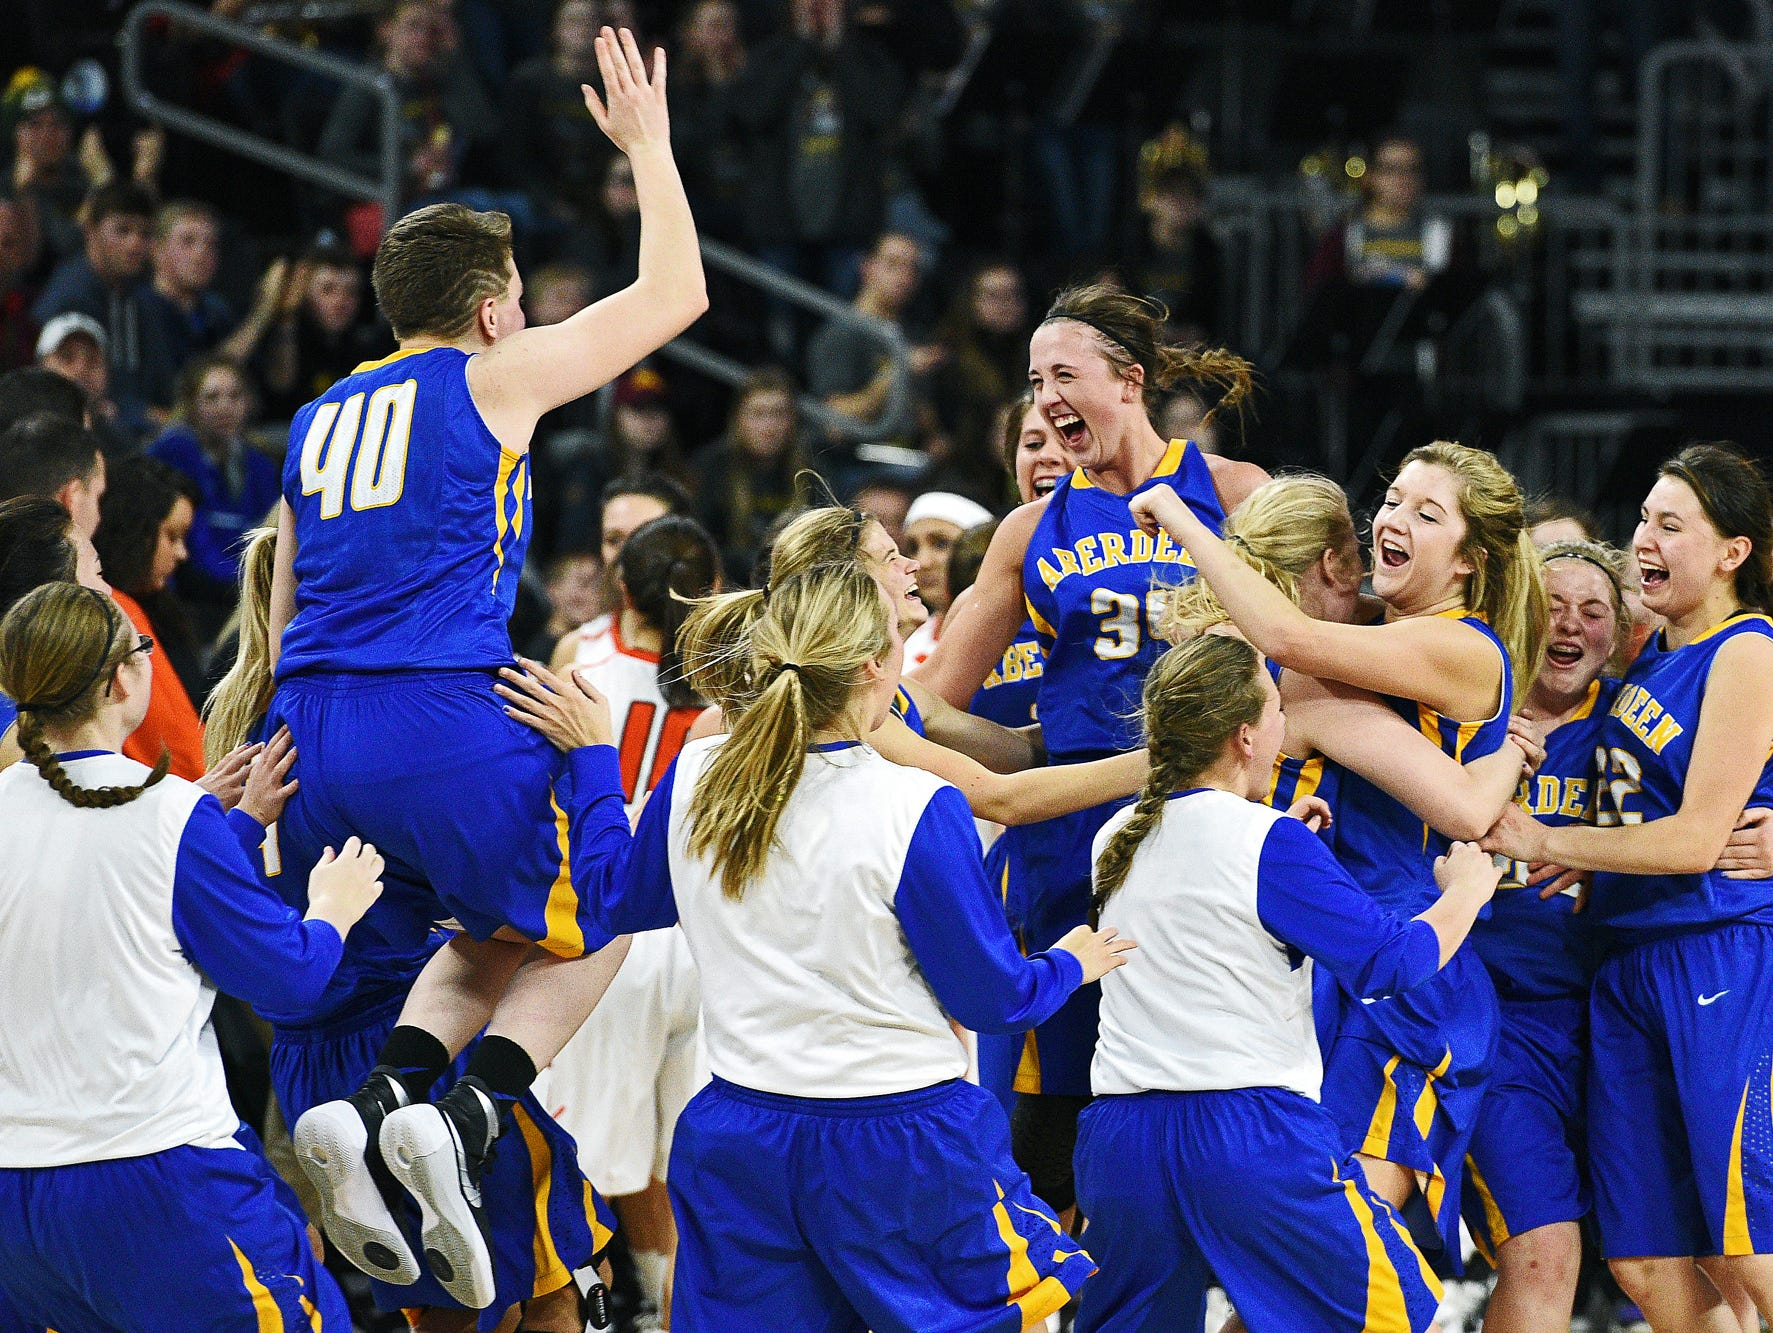 Aberdeen Central players celebrate their 75 to 64 victory over Washington in the South Dakota Class AA State Girls Basketball Tournament championship game Saturday, March 19, 2016, at the Denny Sanford Premier Center in Sioux Falls.